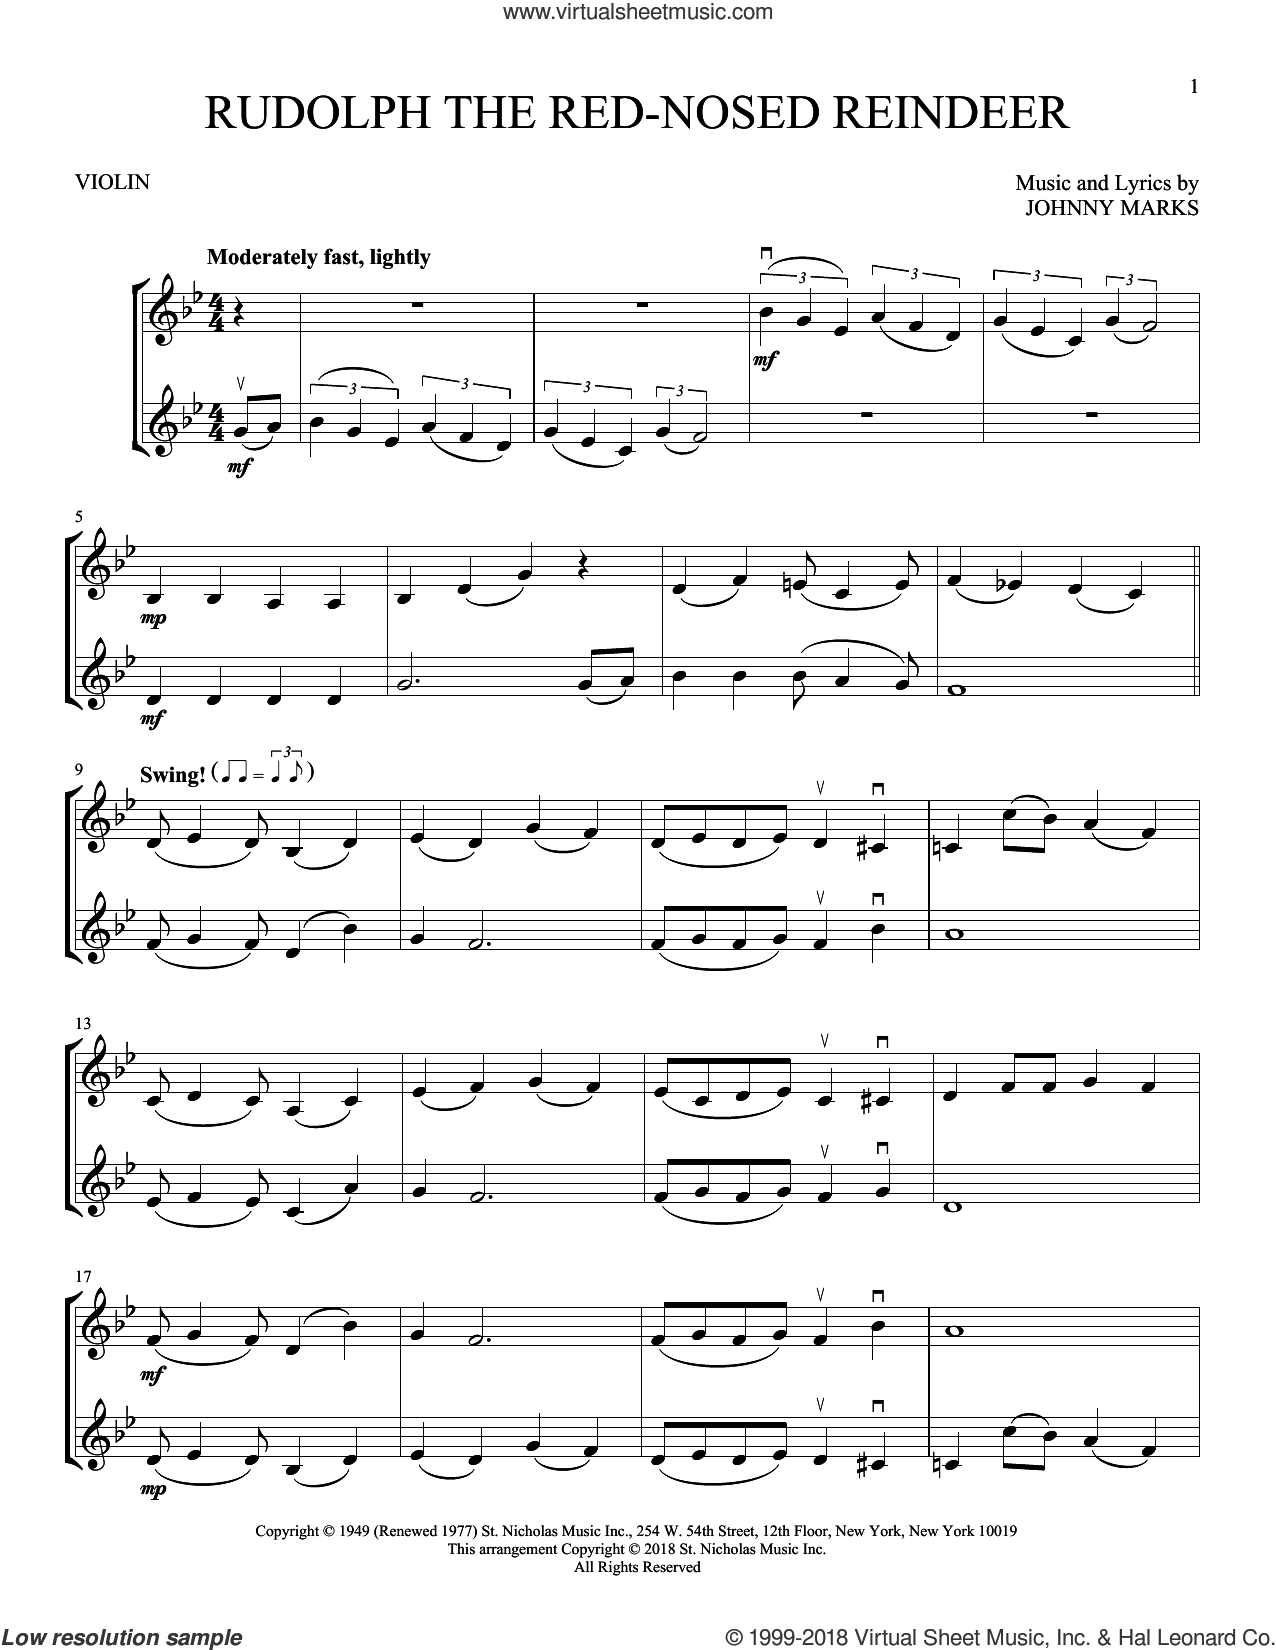 Rudolph The Red-Nosed Reindeer sheet music for two violins (duets, violin duets) by Johnny Marks, intermediate skill level